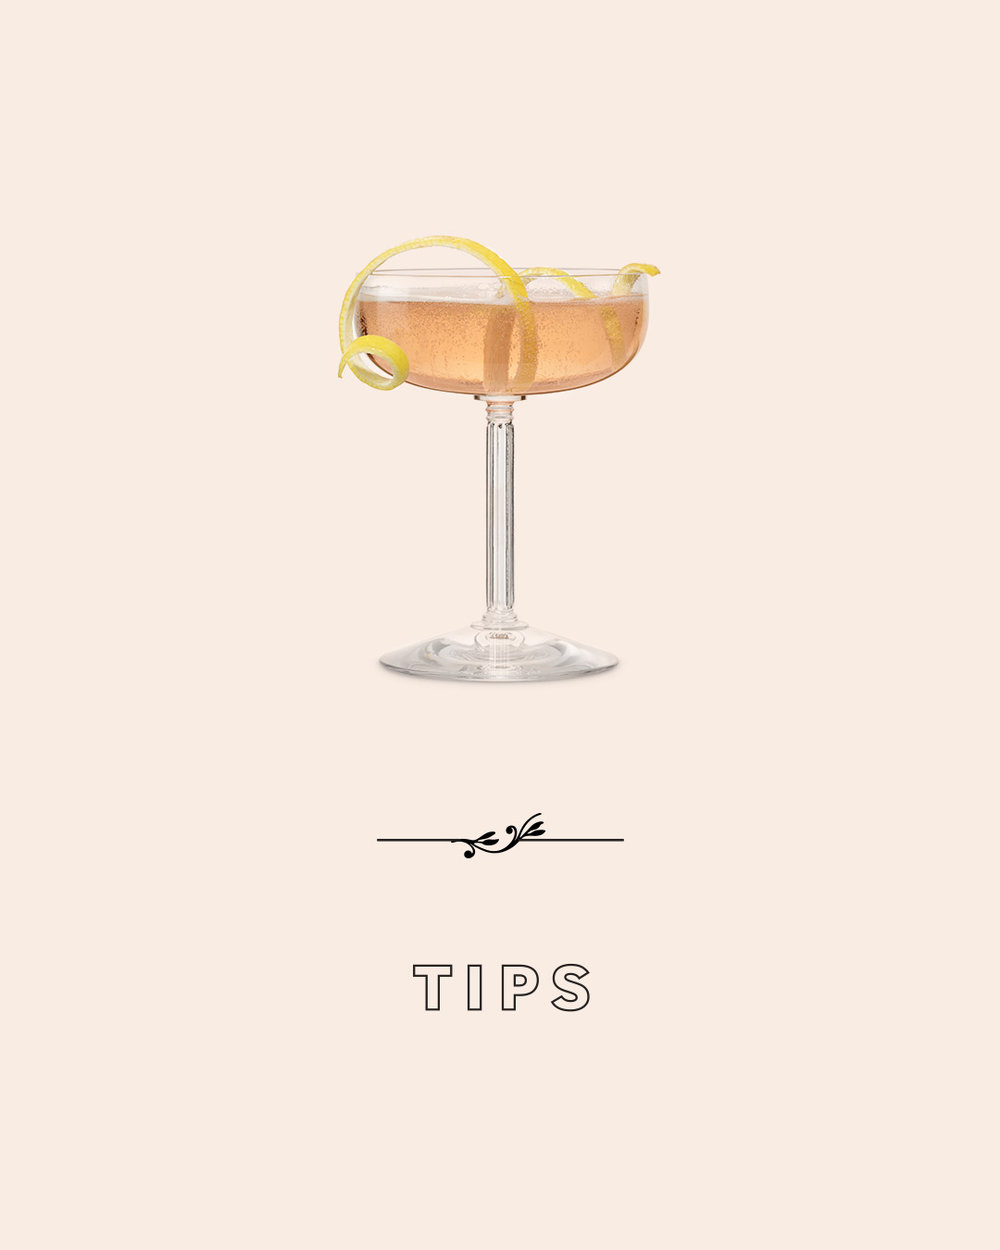 EFFORTLESSLY DRESSED, UP OR DOWN   Enjoy a generous pour over ice, and swirl to release the aromas.  For an elegantly simple mixed drink, splash with tonic, sparkling water, or champagne.  Serve, as always, in your most charming fanciful glass.